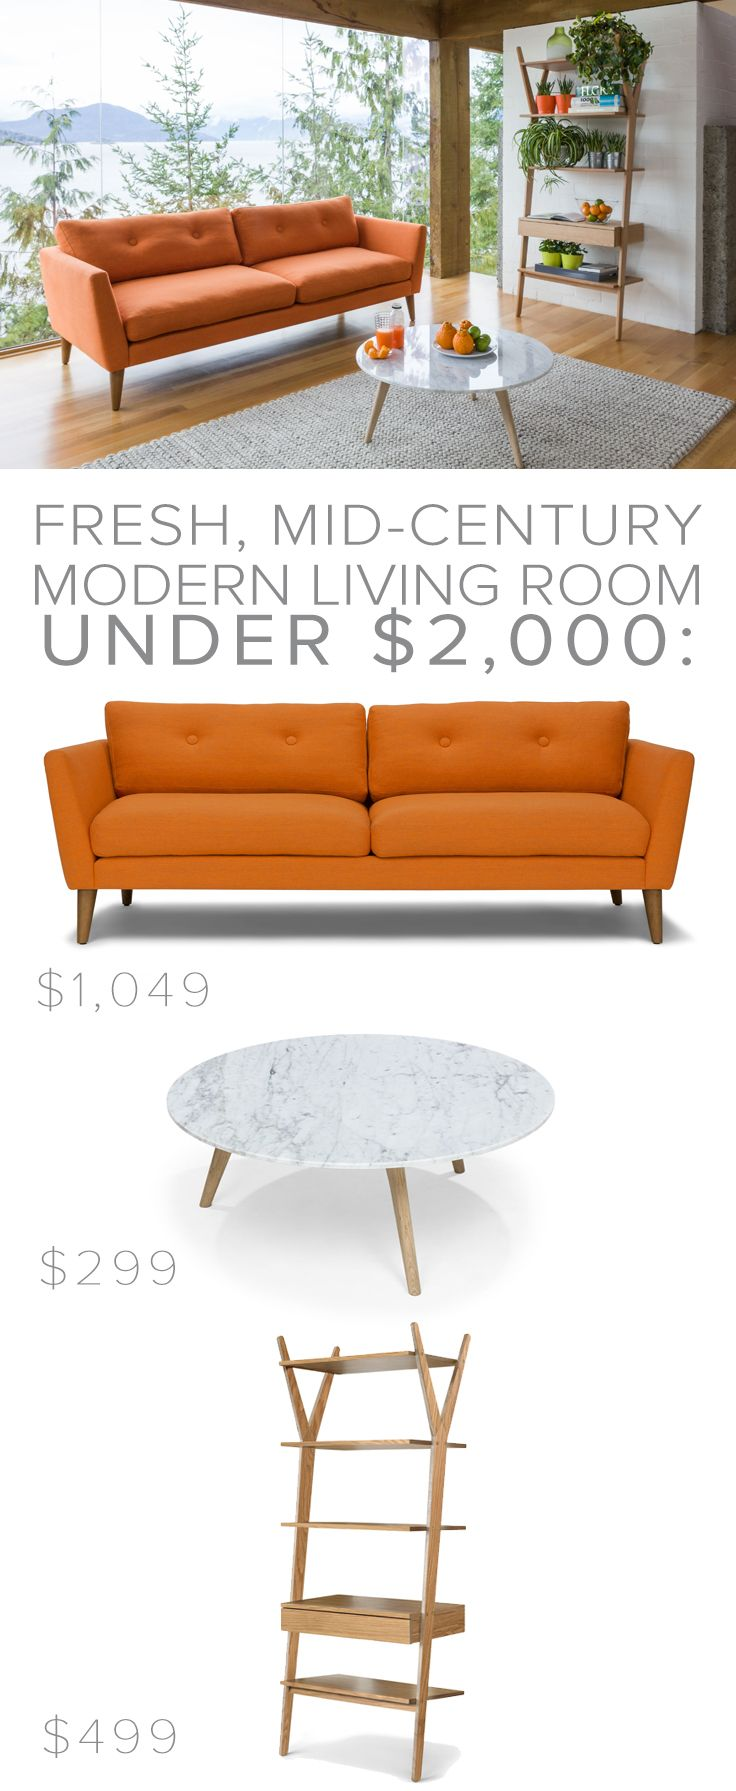 EMIL 'Papaya Orange' sofa // MARA 'Oak + Marble' coffee table // LIGNUM 'Solid Oak' shelving unit